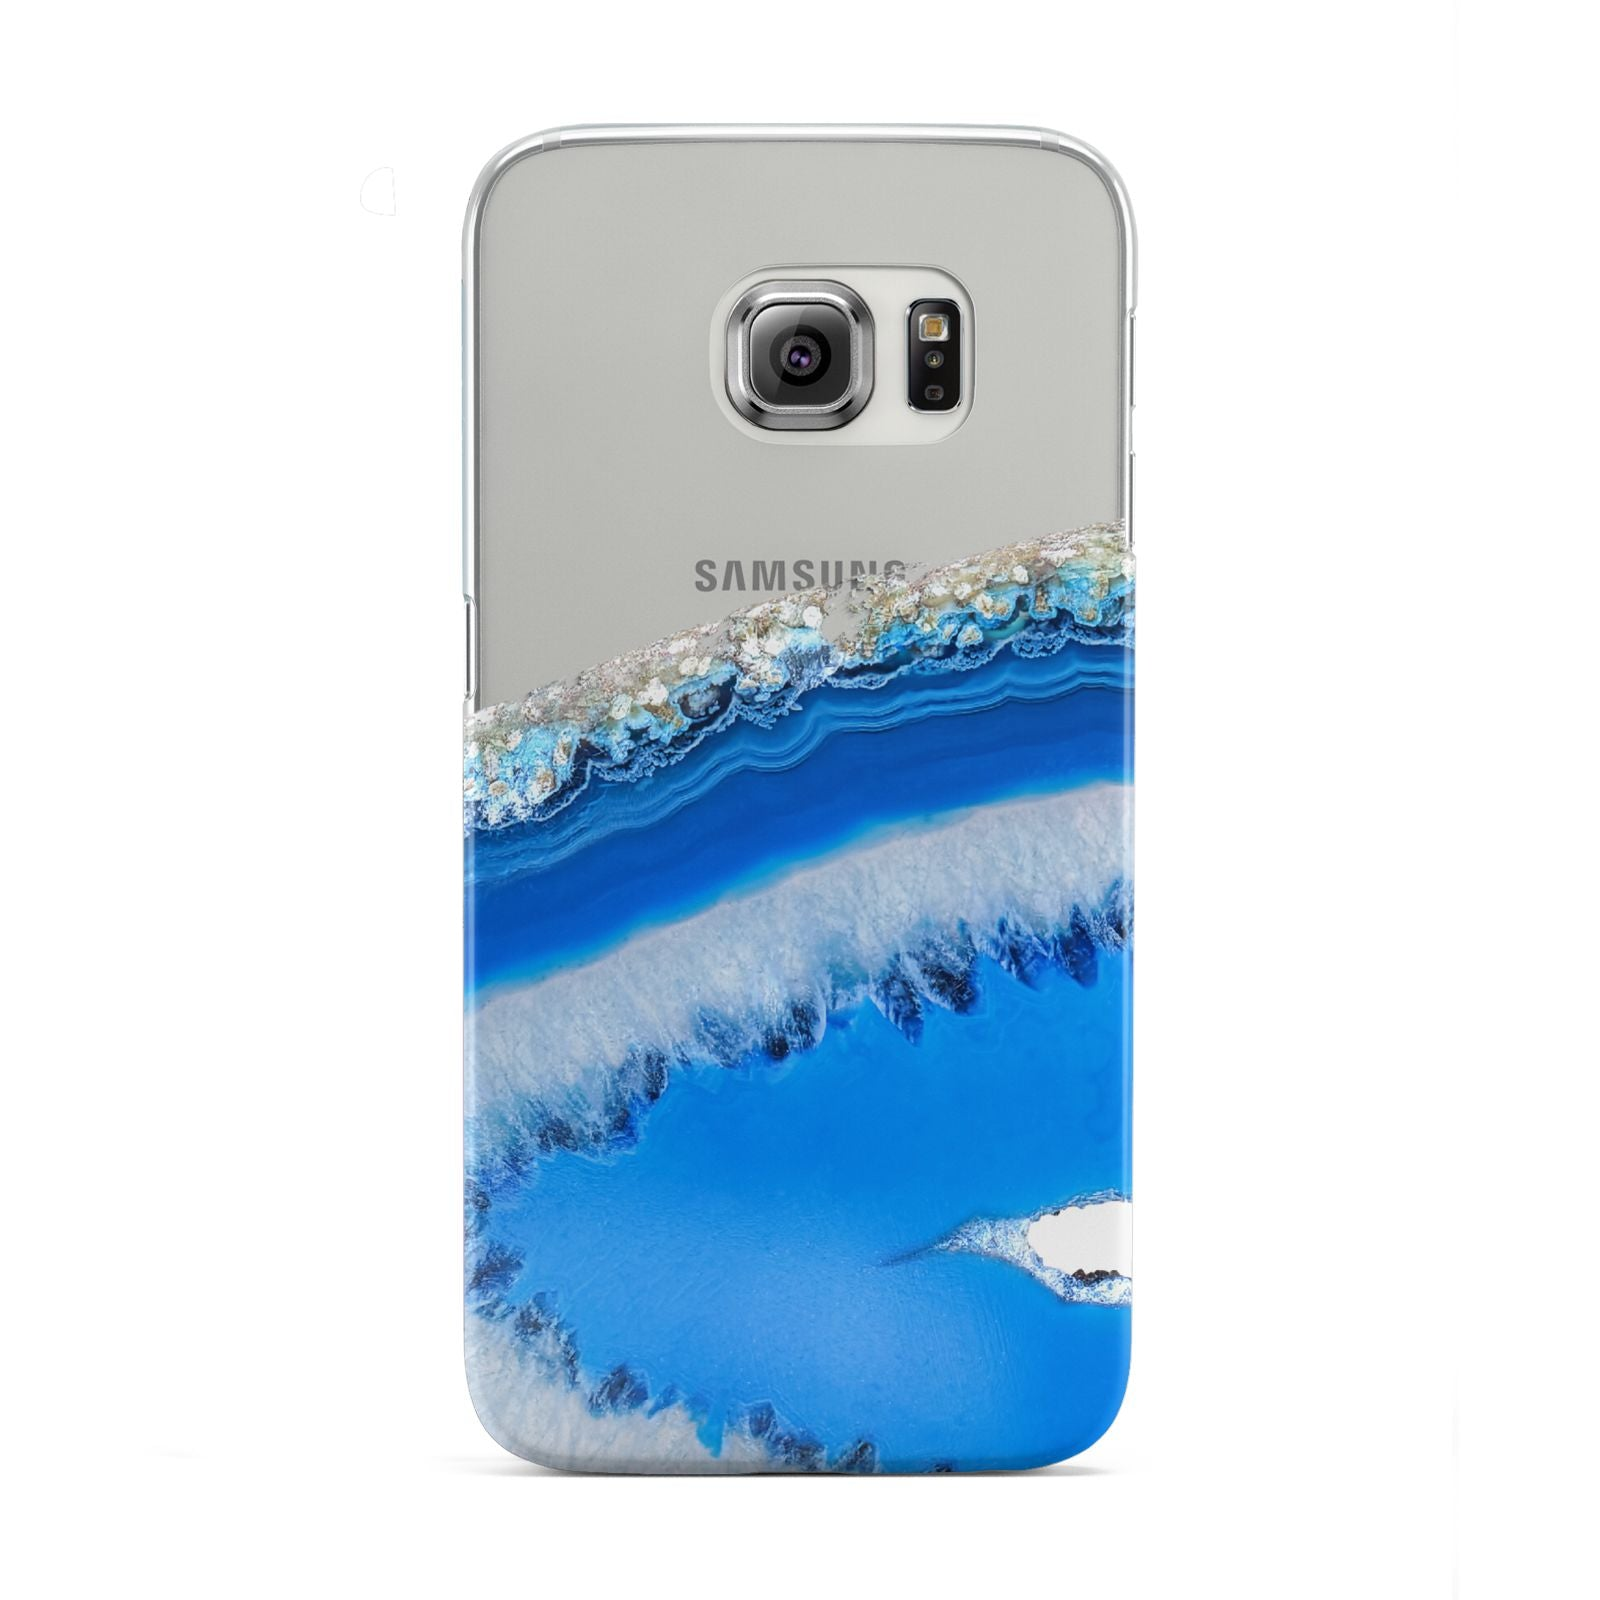 Agate Blue Samsung Galaxy S6 Edge Case